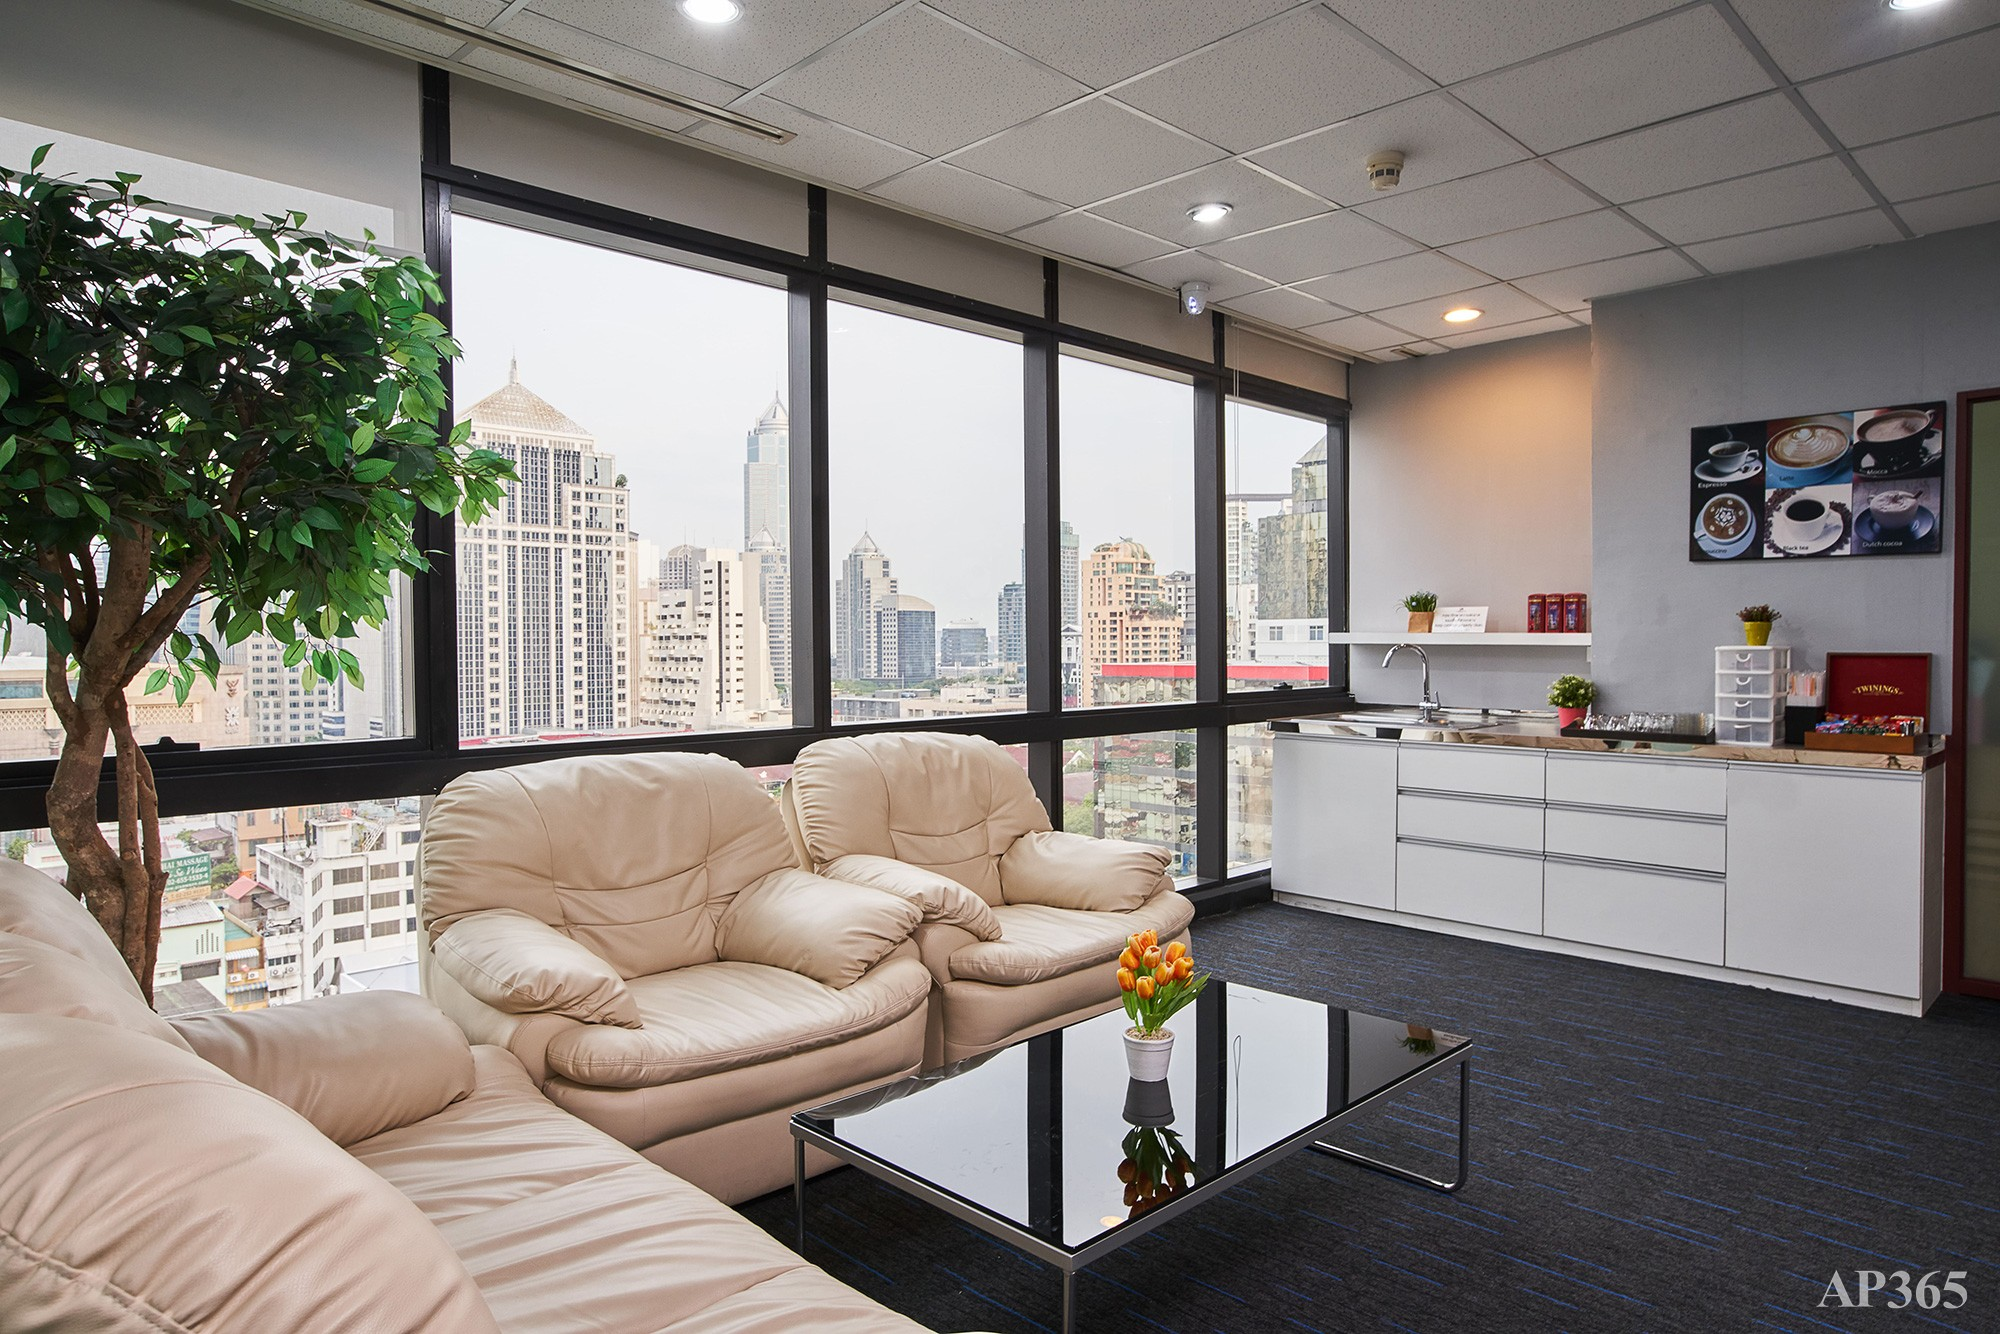 Linuxx Serviced Office - President Tower 11th Fl. (Room Atlantic) - 1